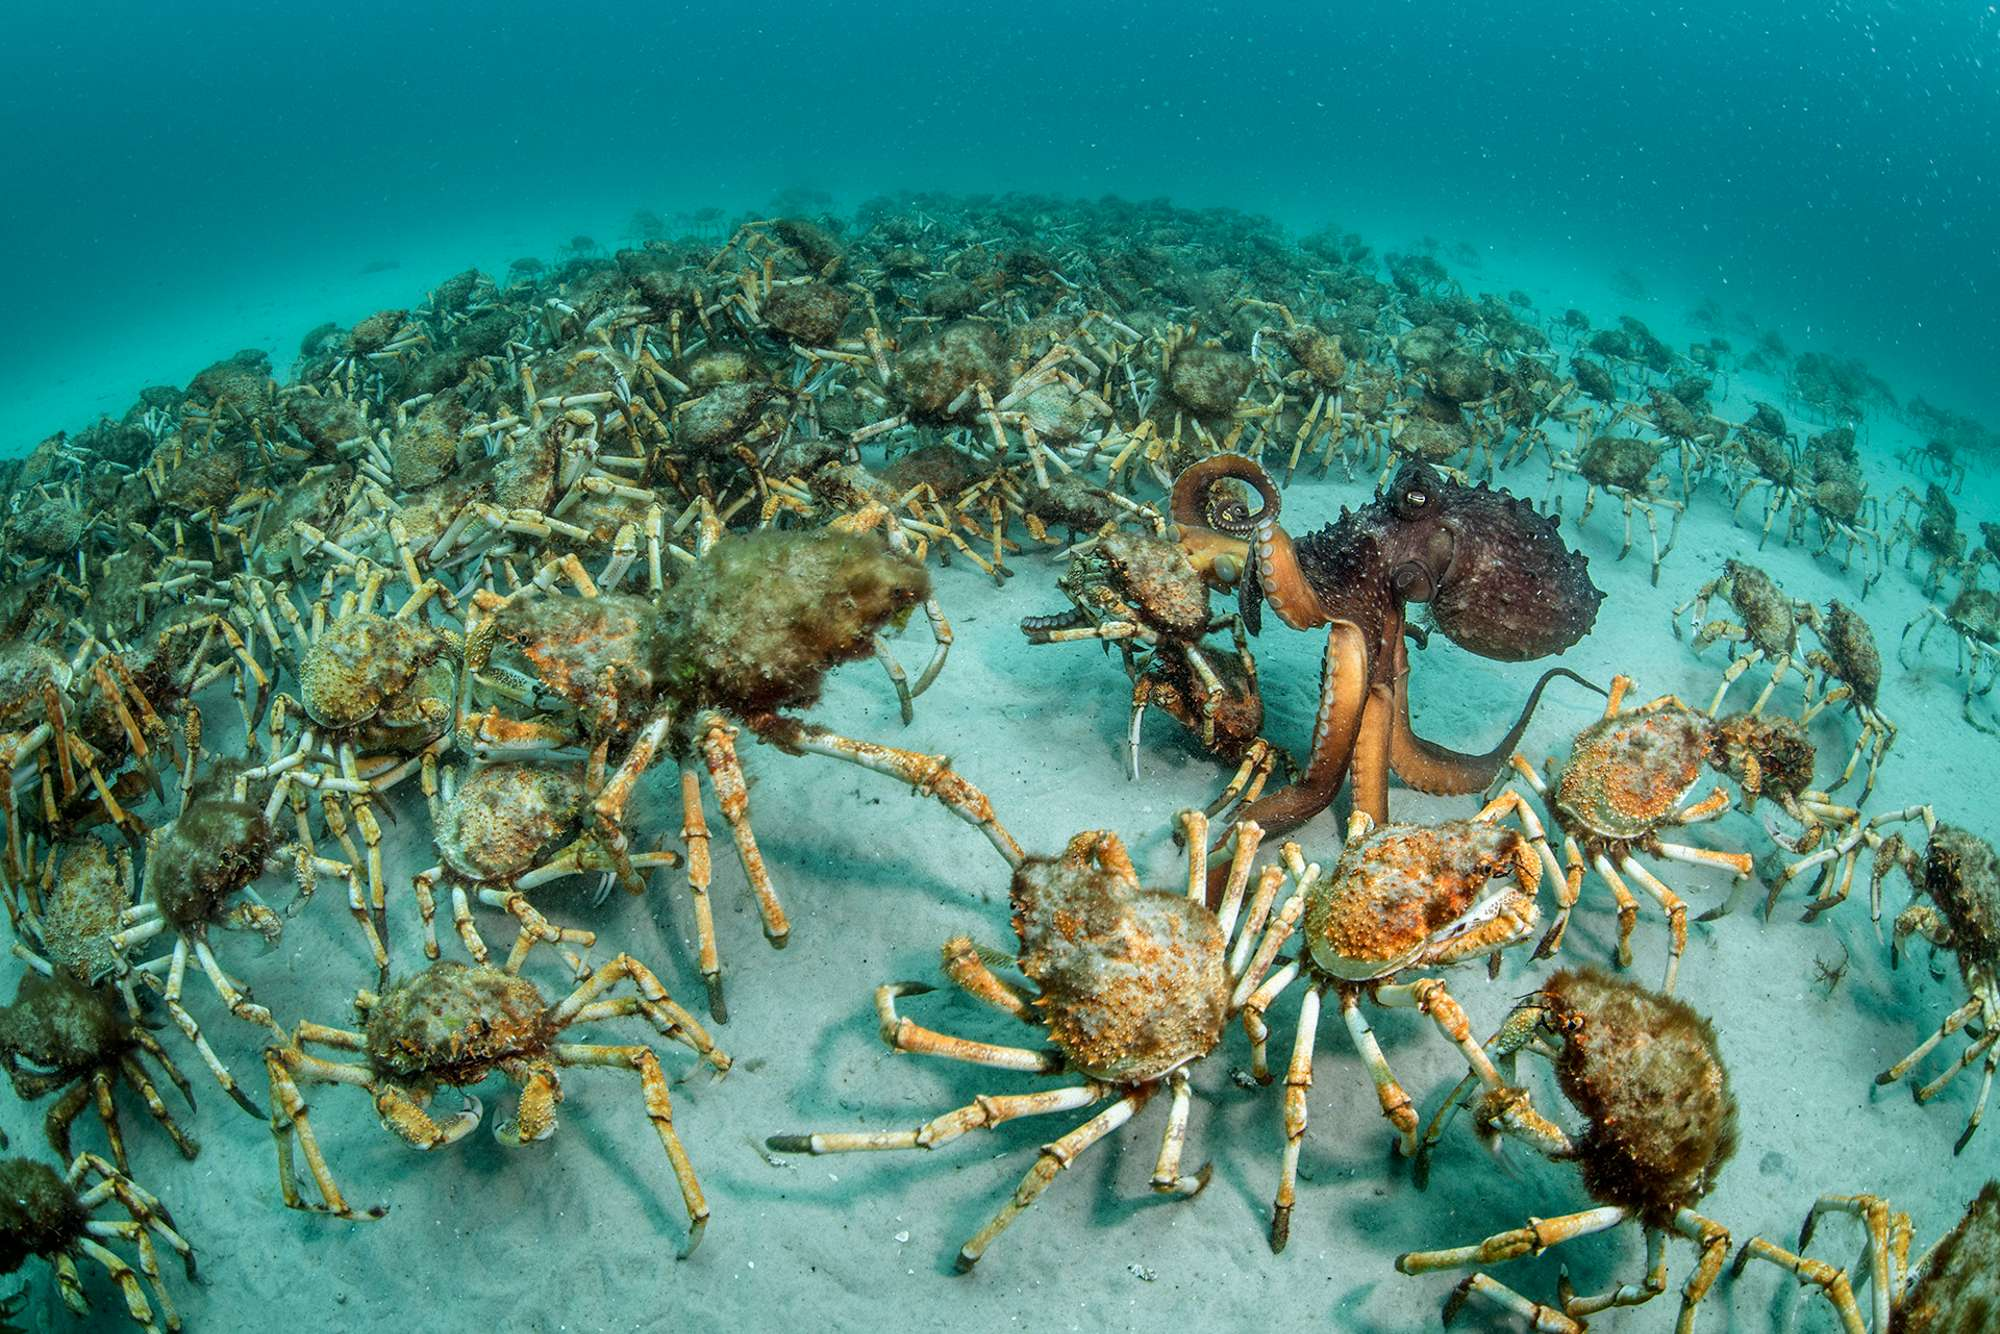 Spider crab procession, Australia